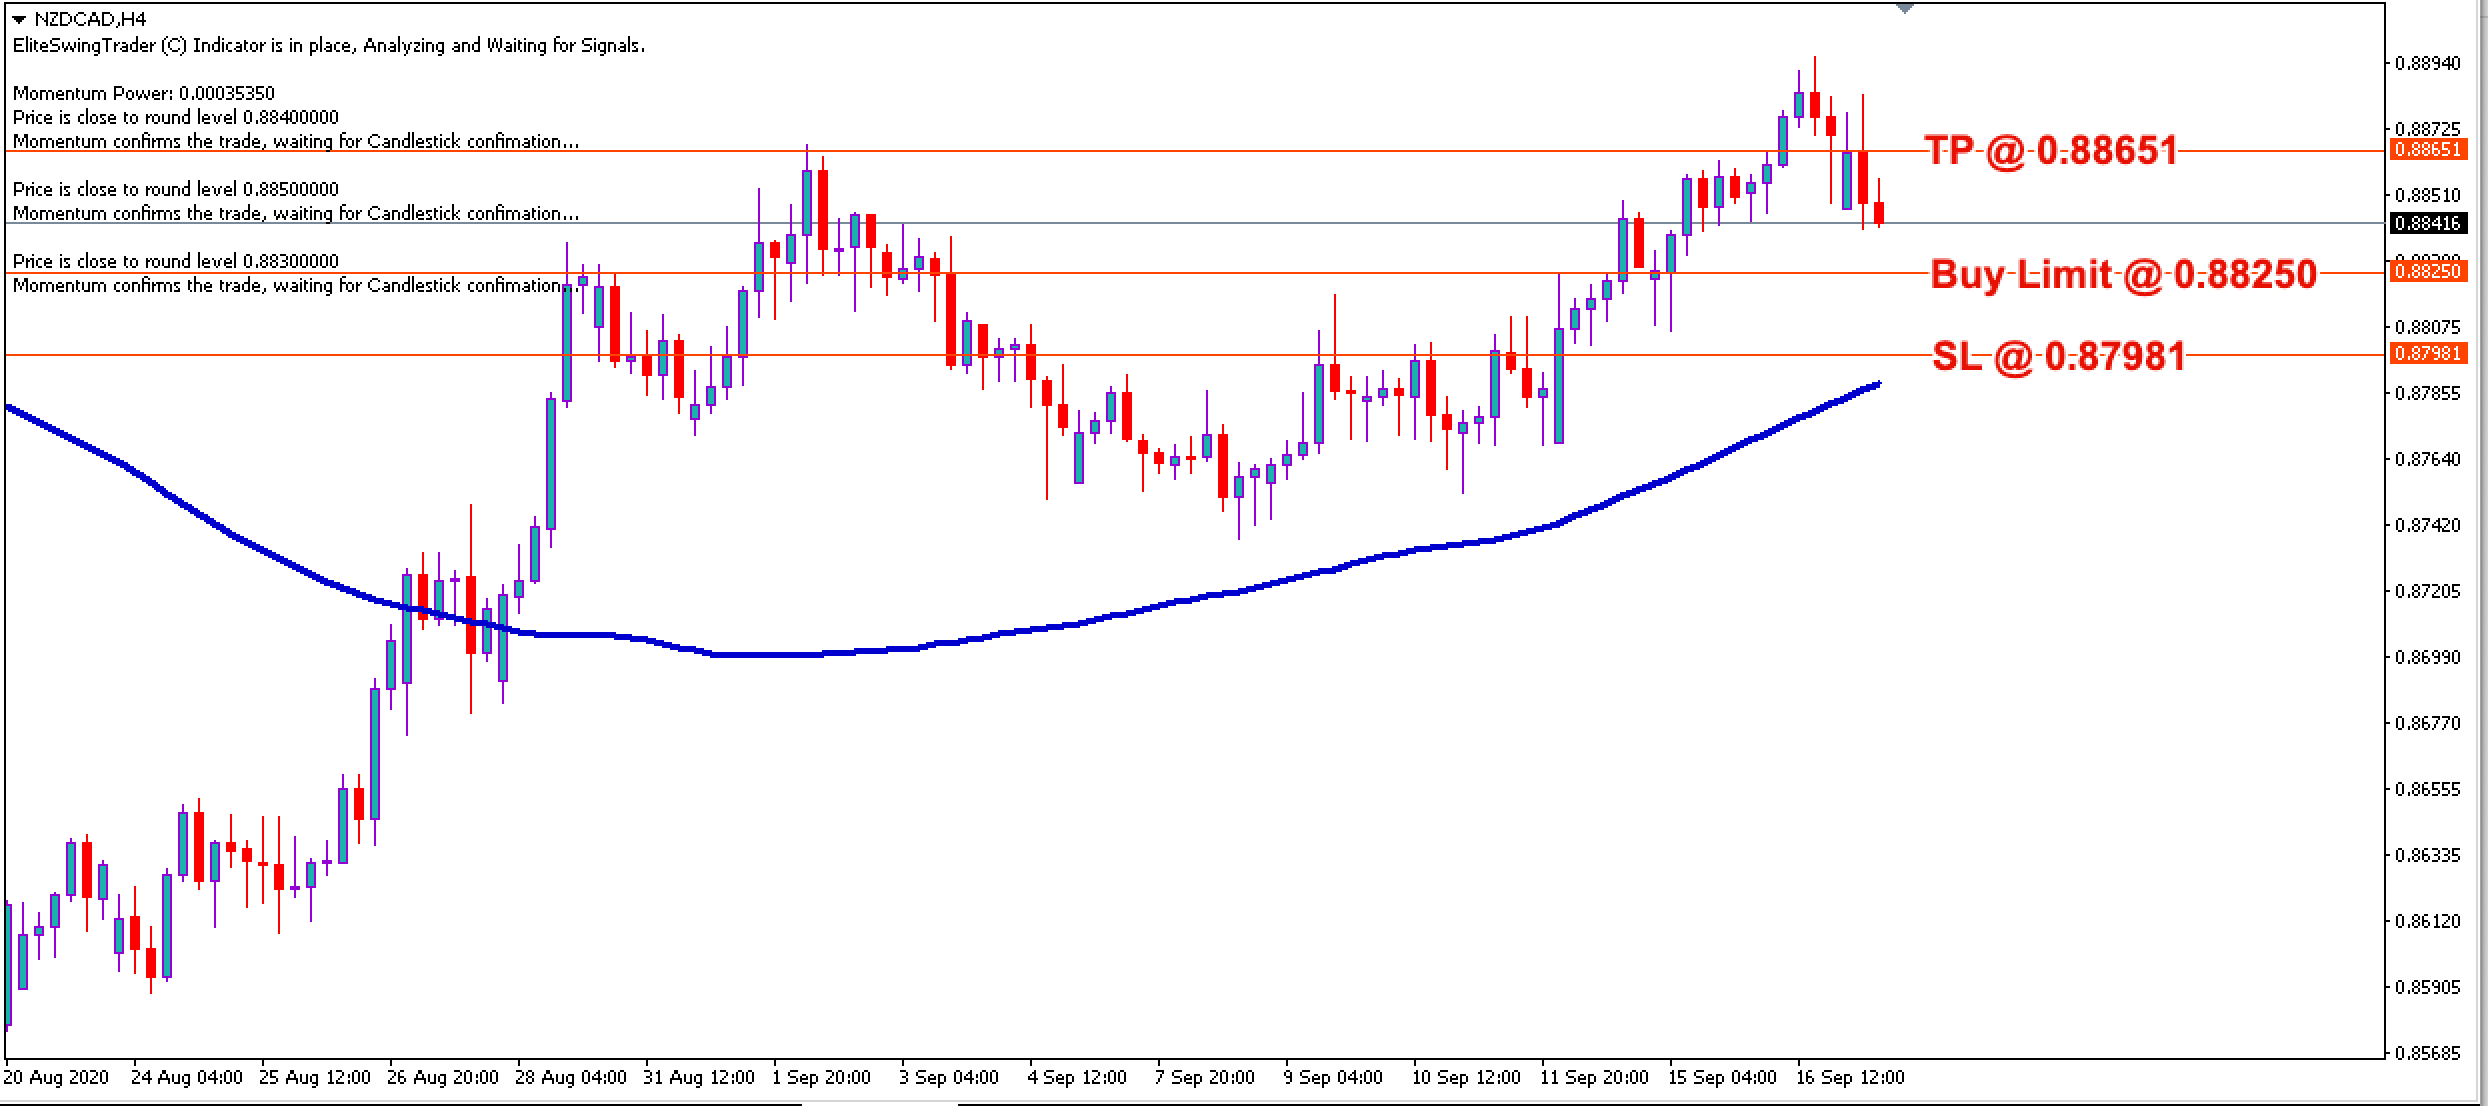 NZD/CAD Daily Price Forecast - 17th Sept 2020